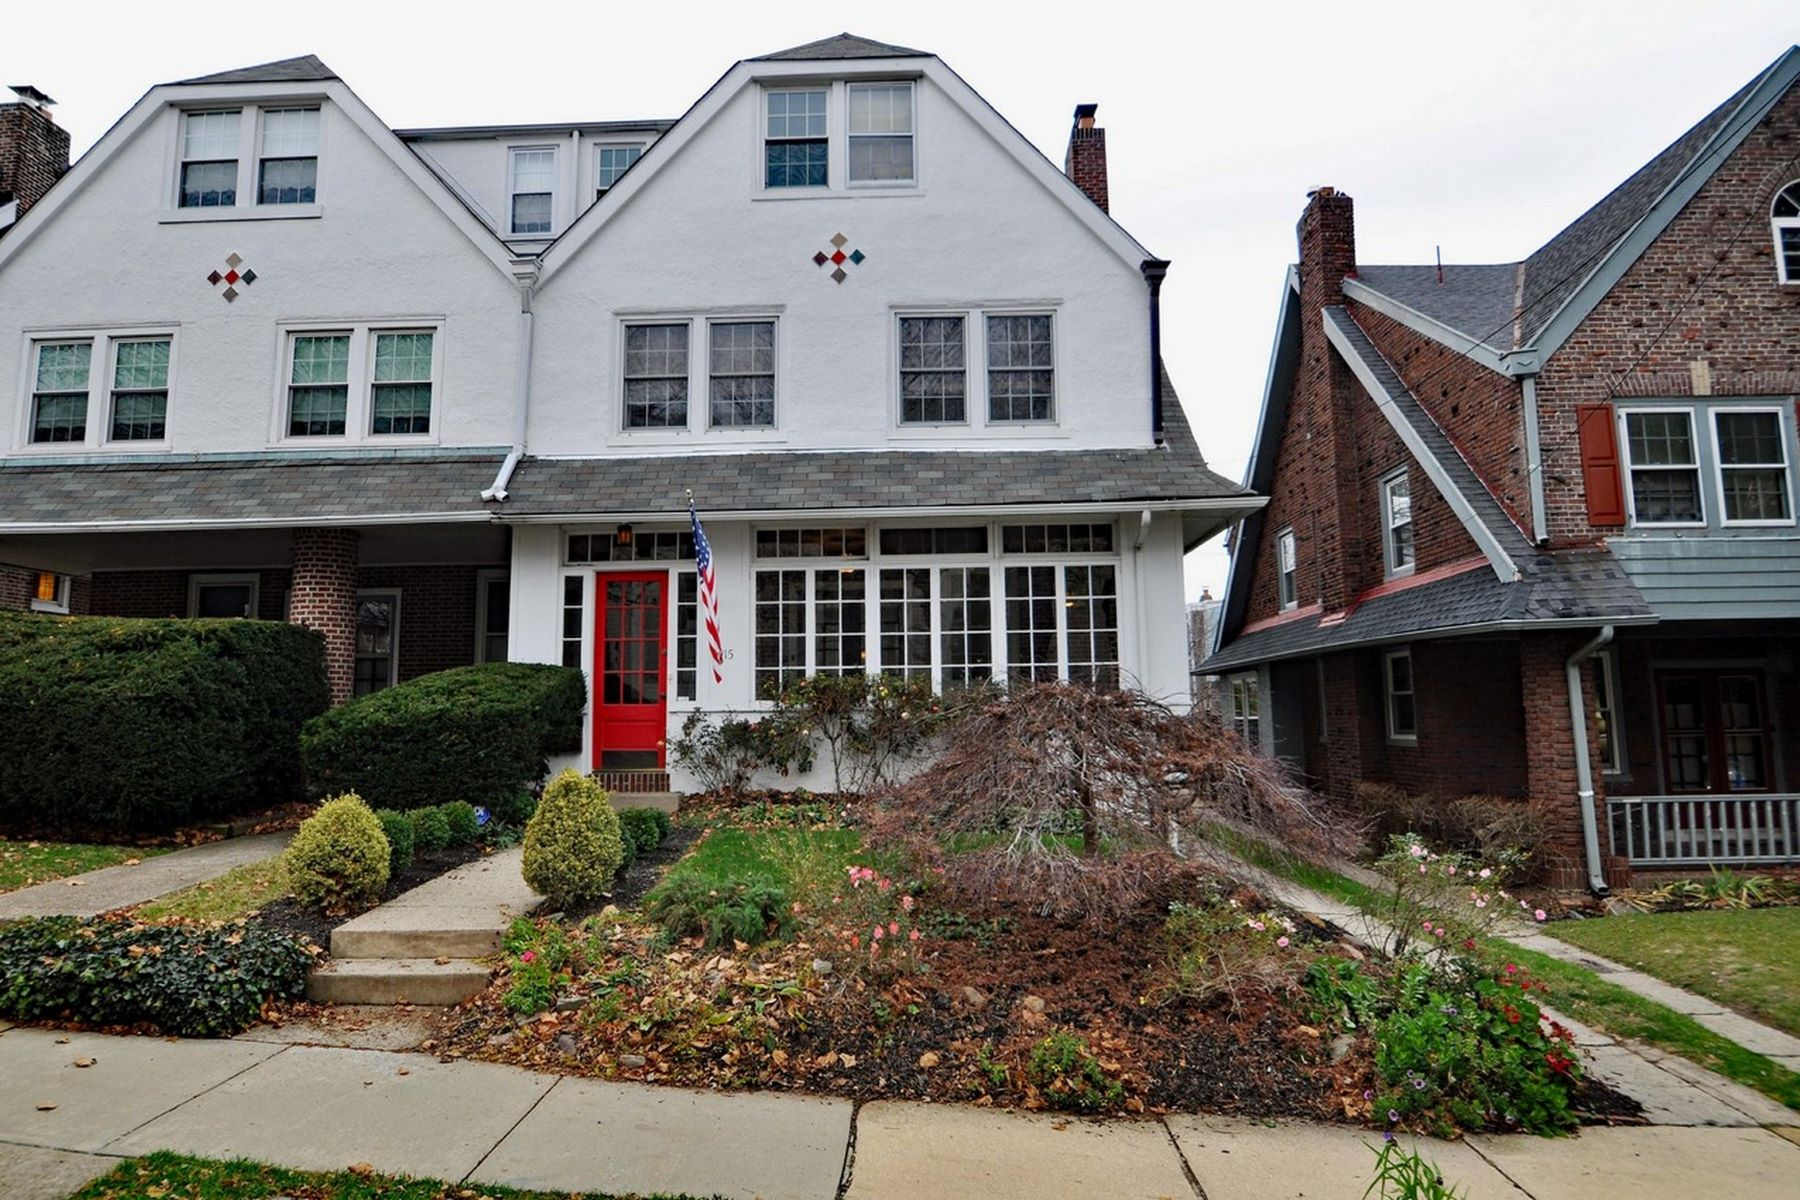 Townhouse for Sale at Cool Springs 915 N. Rodney St. Wilmington, Delaware, 19806 United States